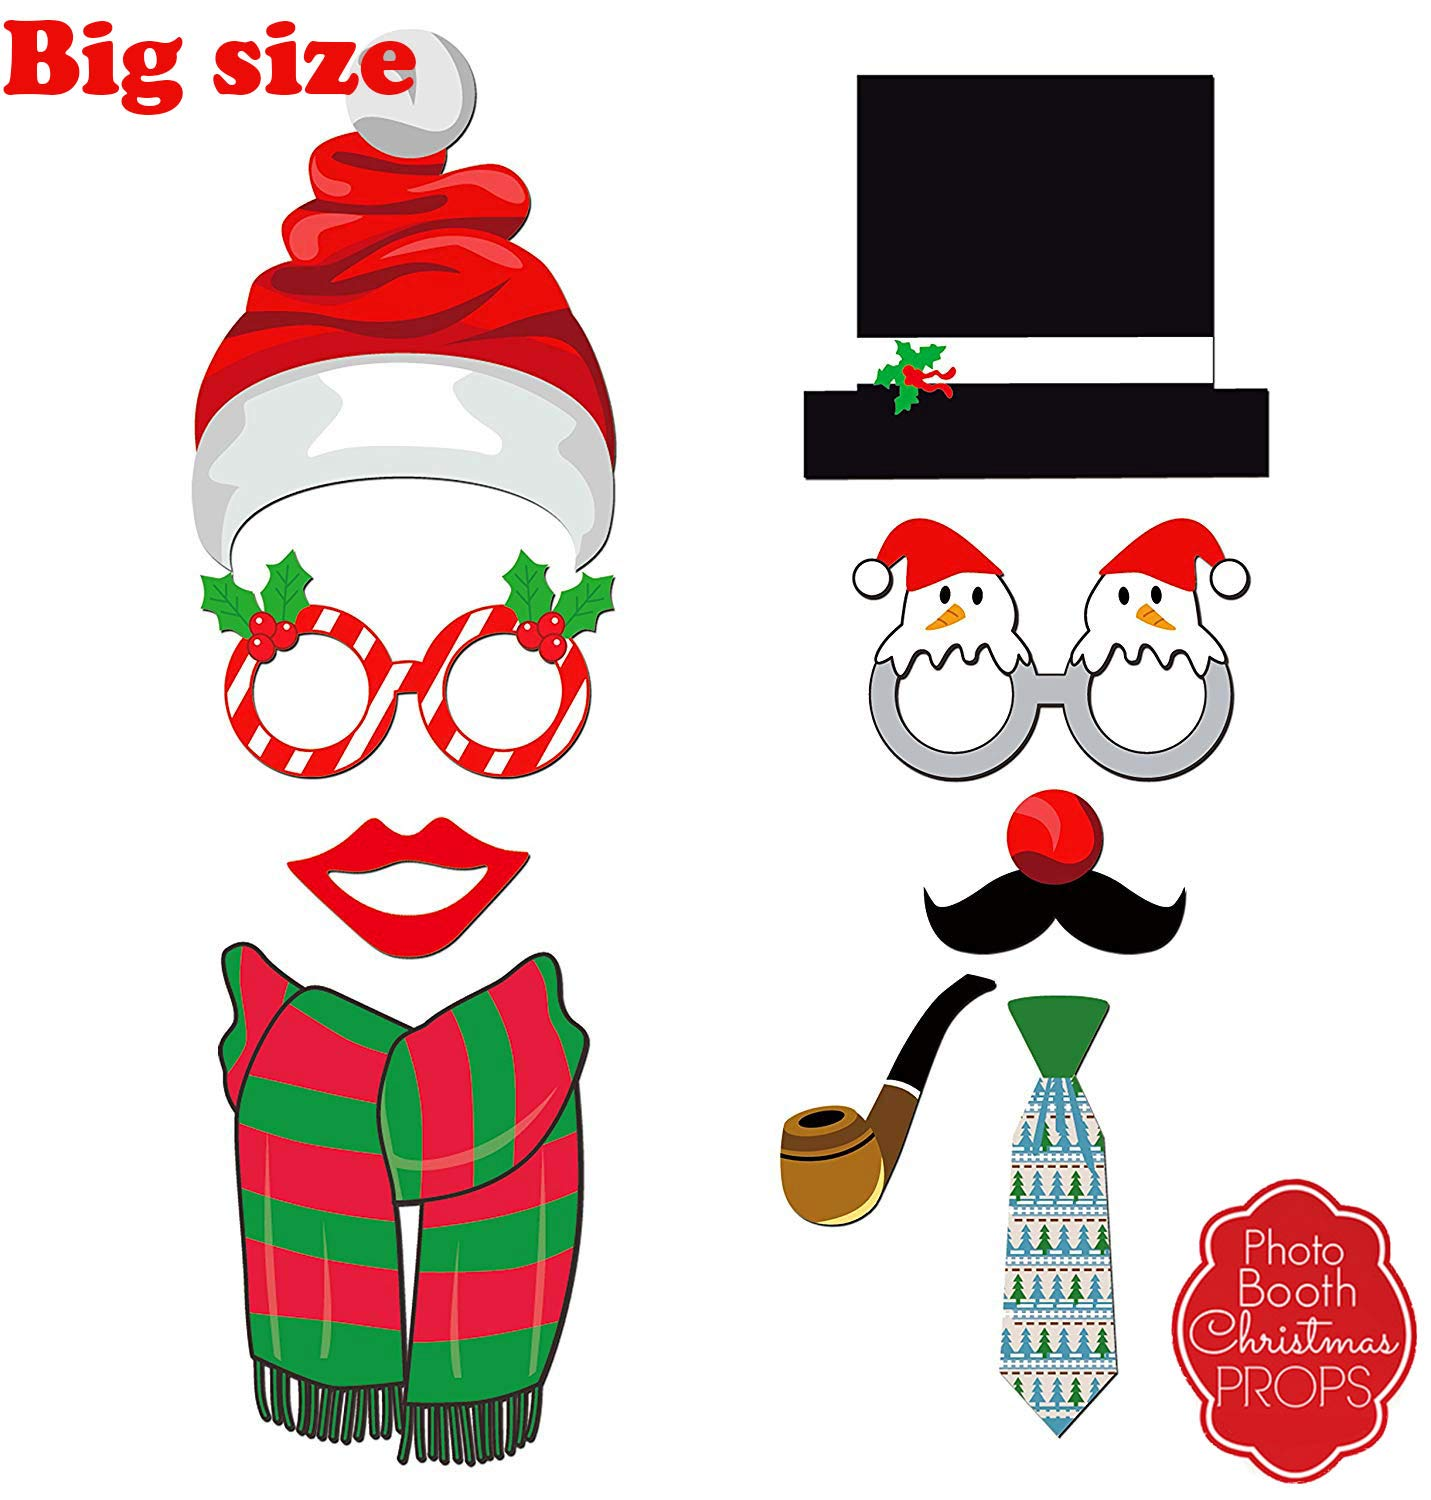 Christmas Party Photo Booth Props Gifts Knit 47 Ugly Sweater